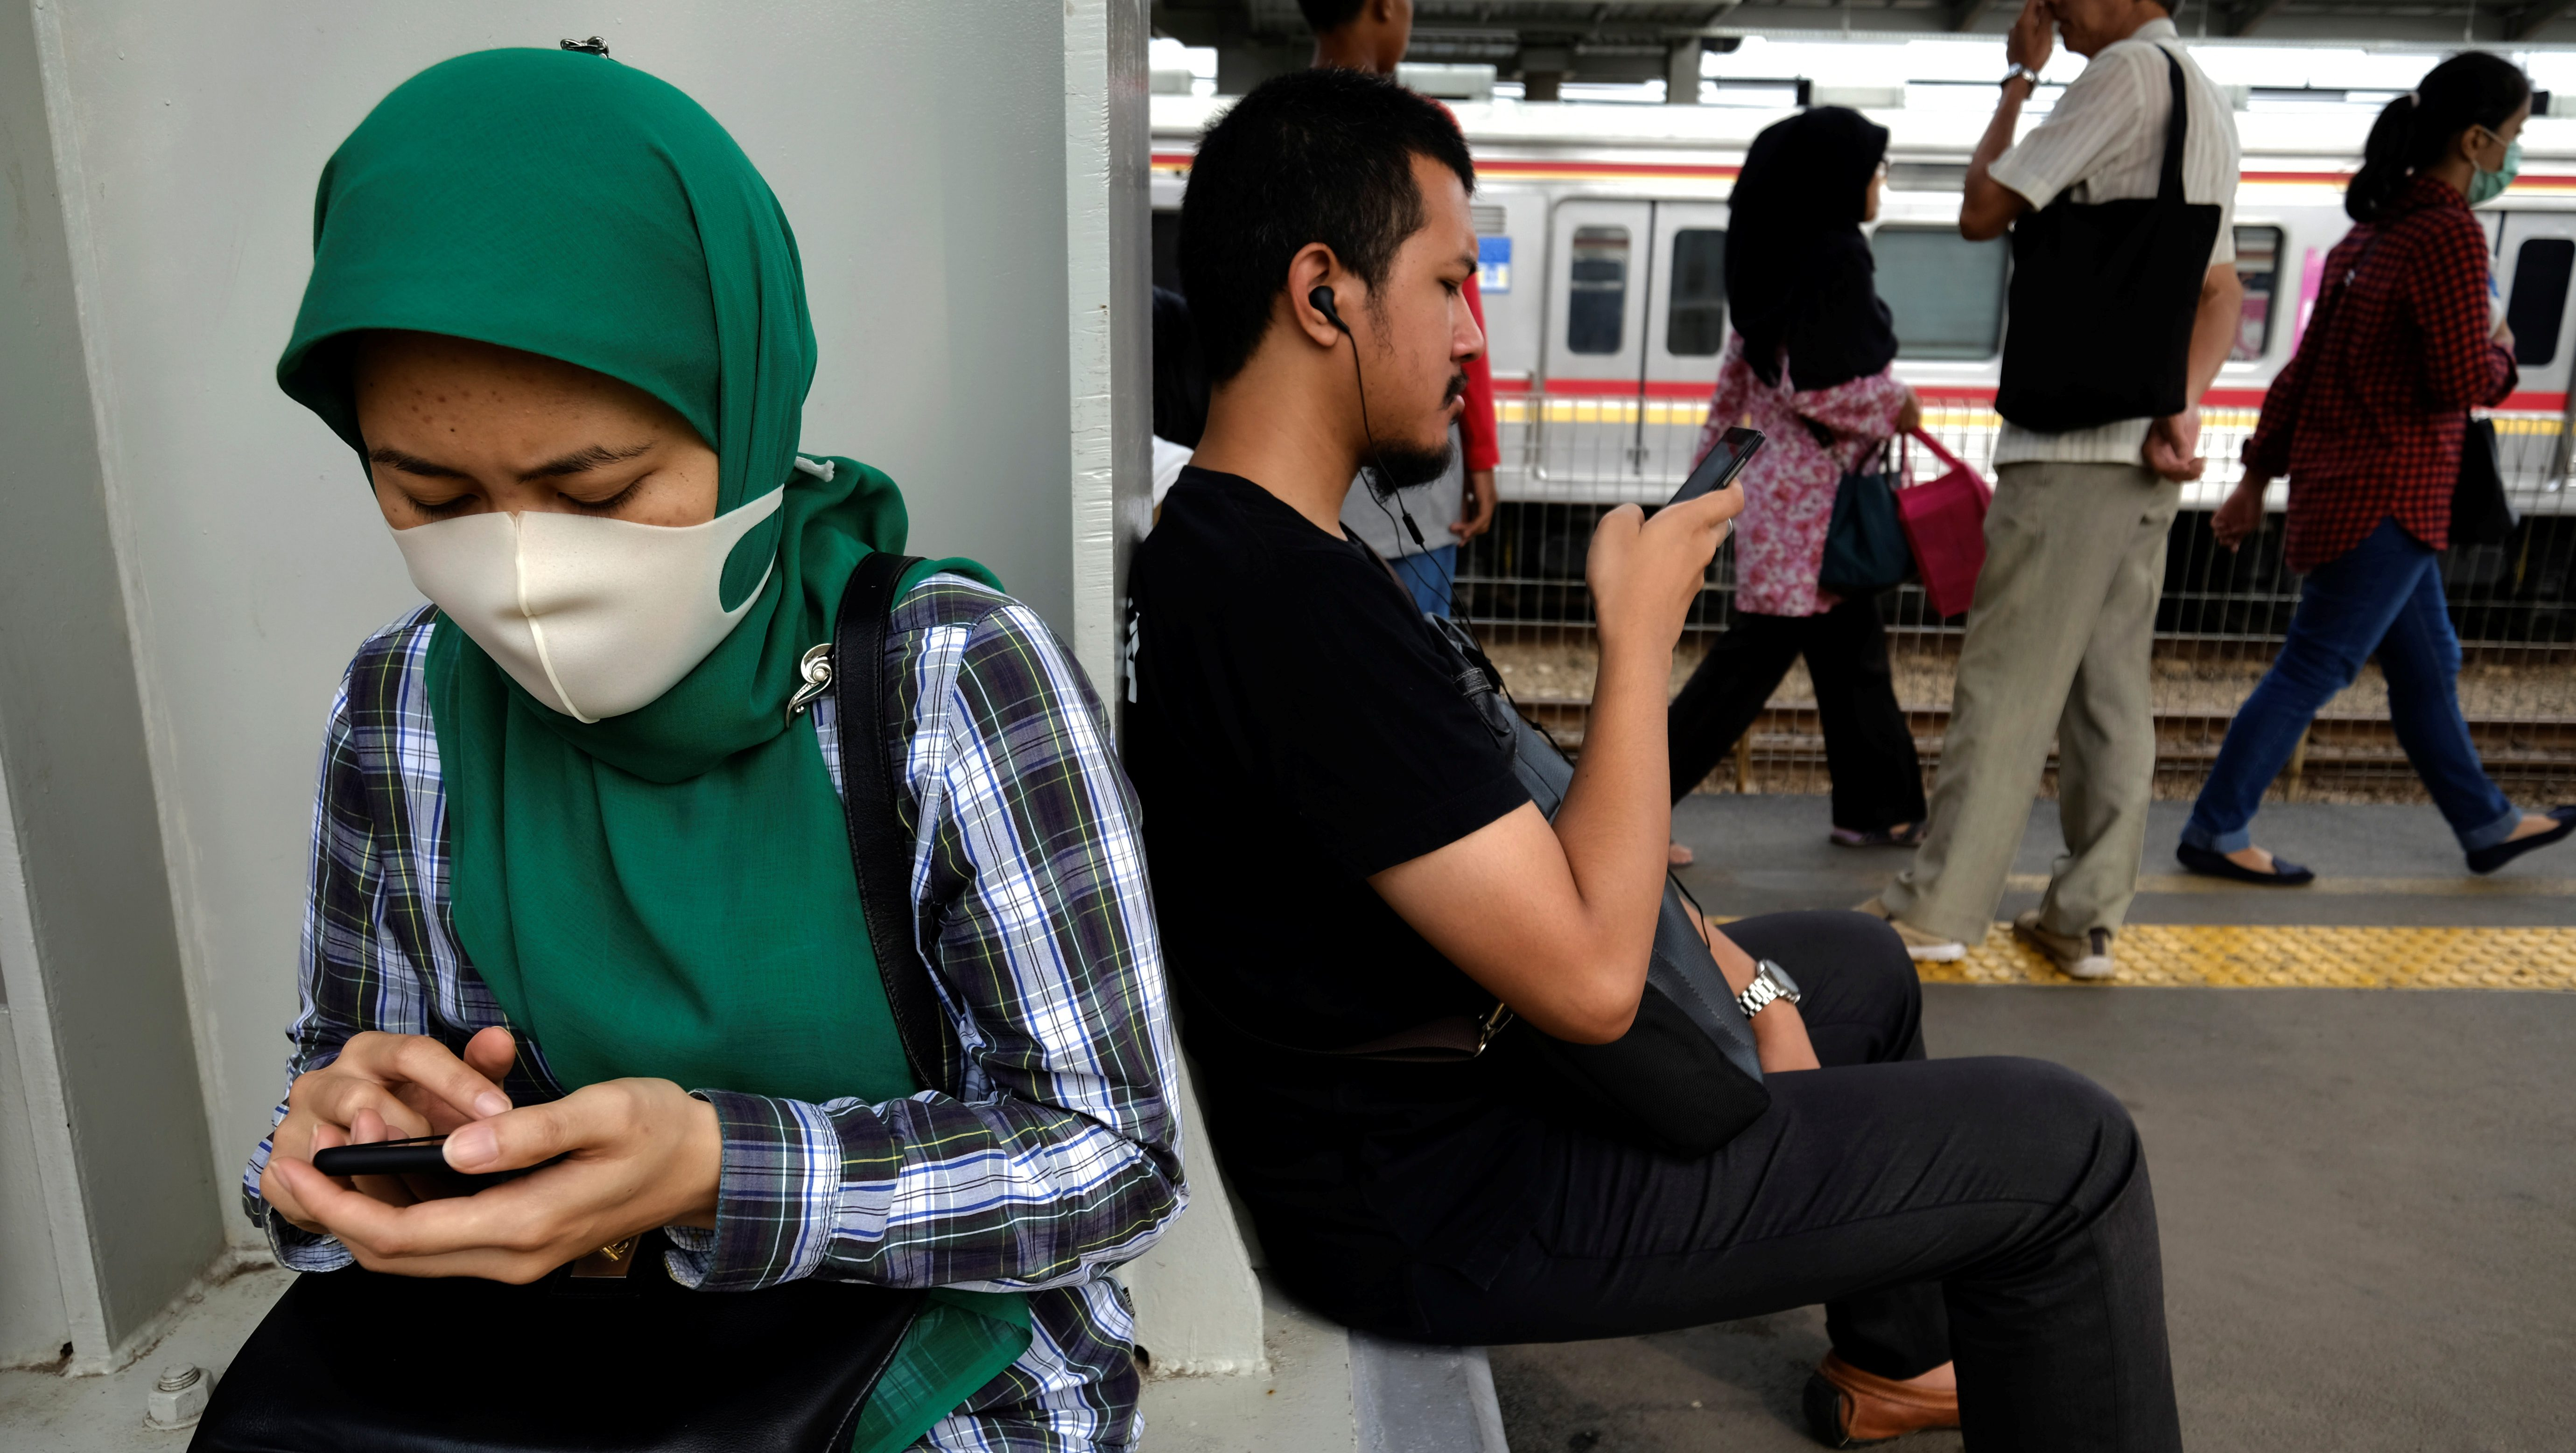 Commuters use their smartphones as they wait for the train during the morning rush at Tanah Abang train station in Jakarta, Indonesia, June 13, 2017.